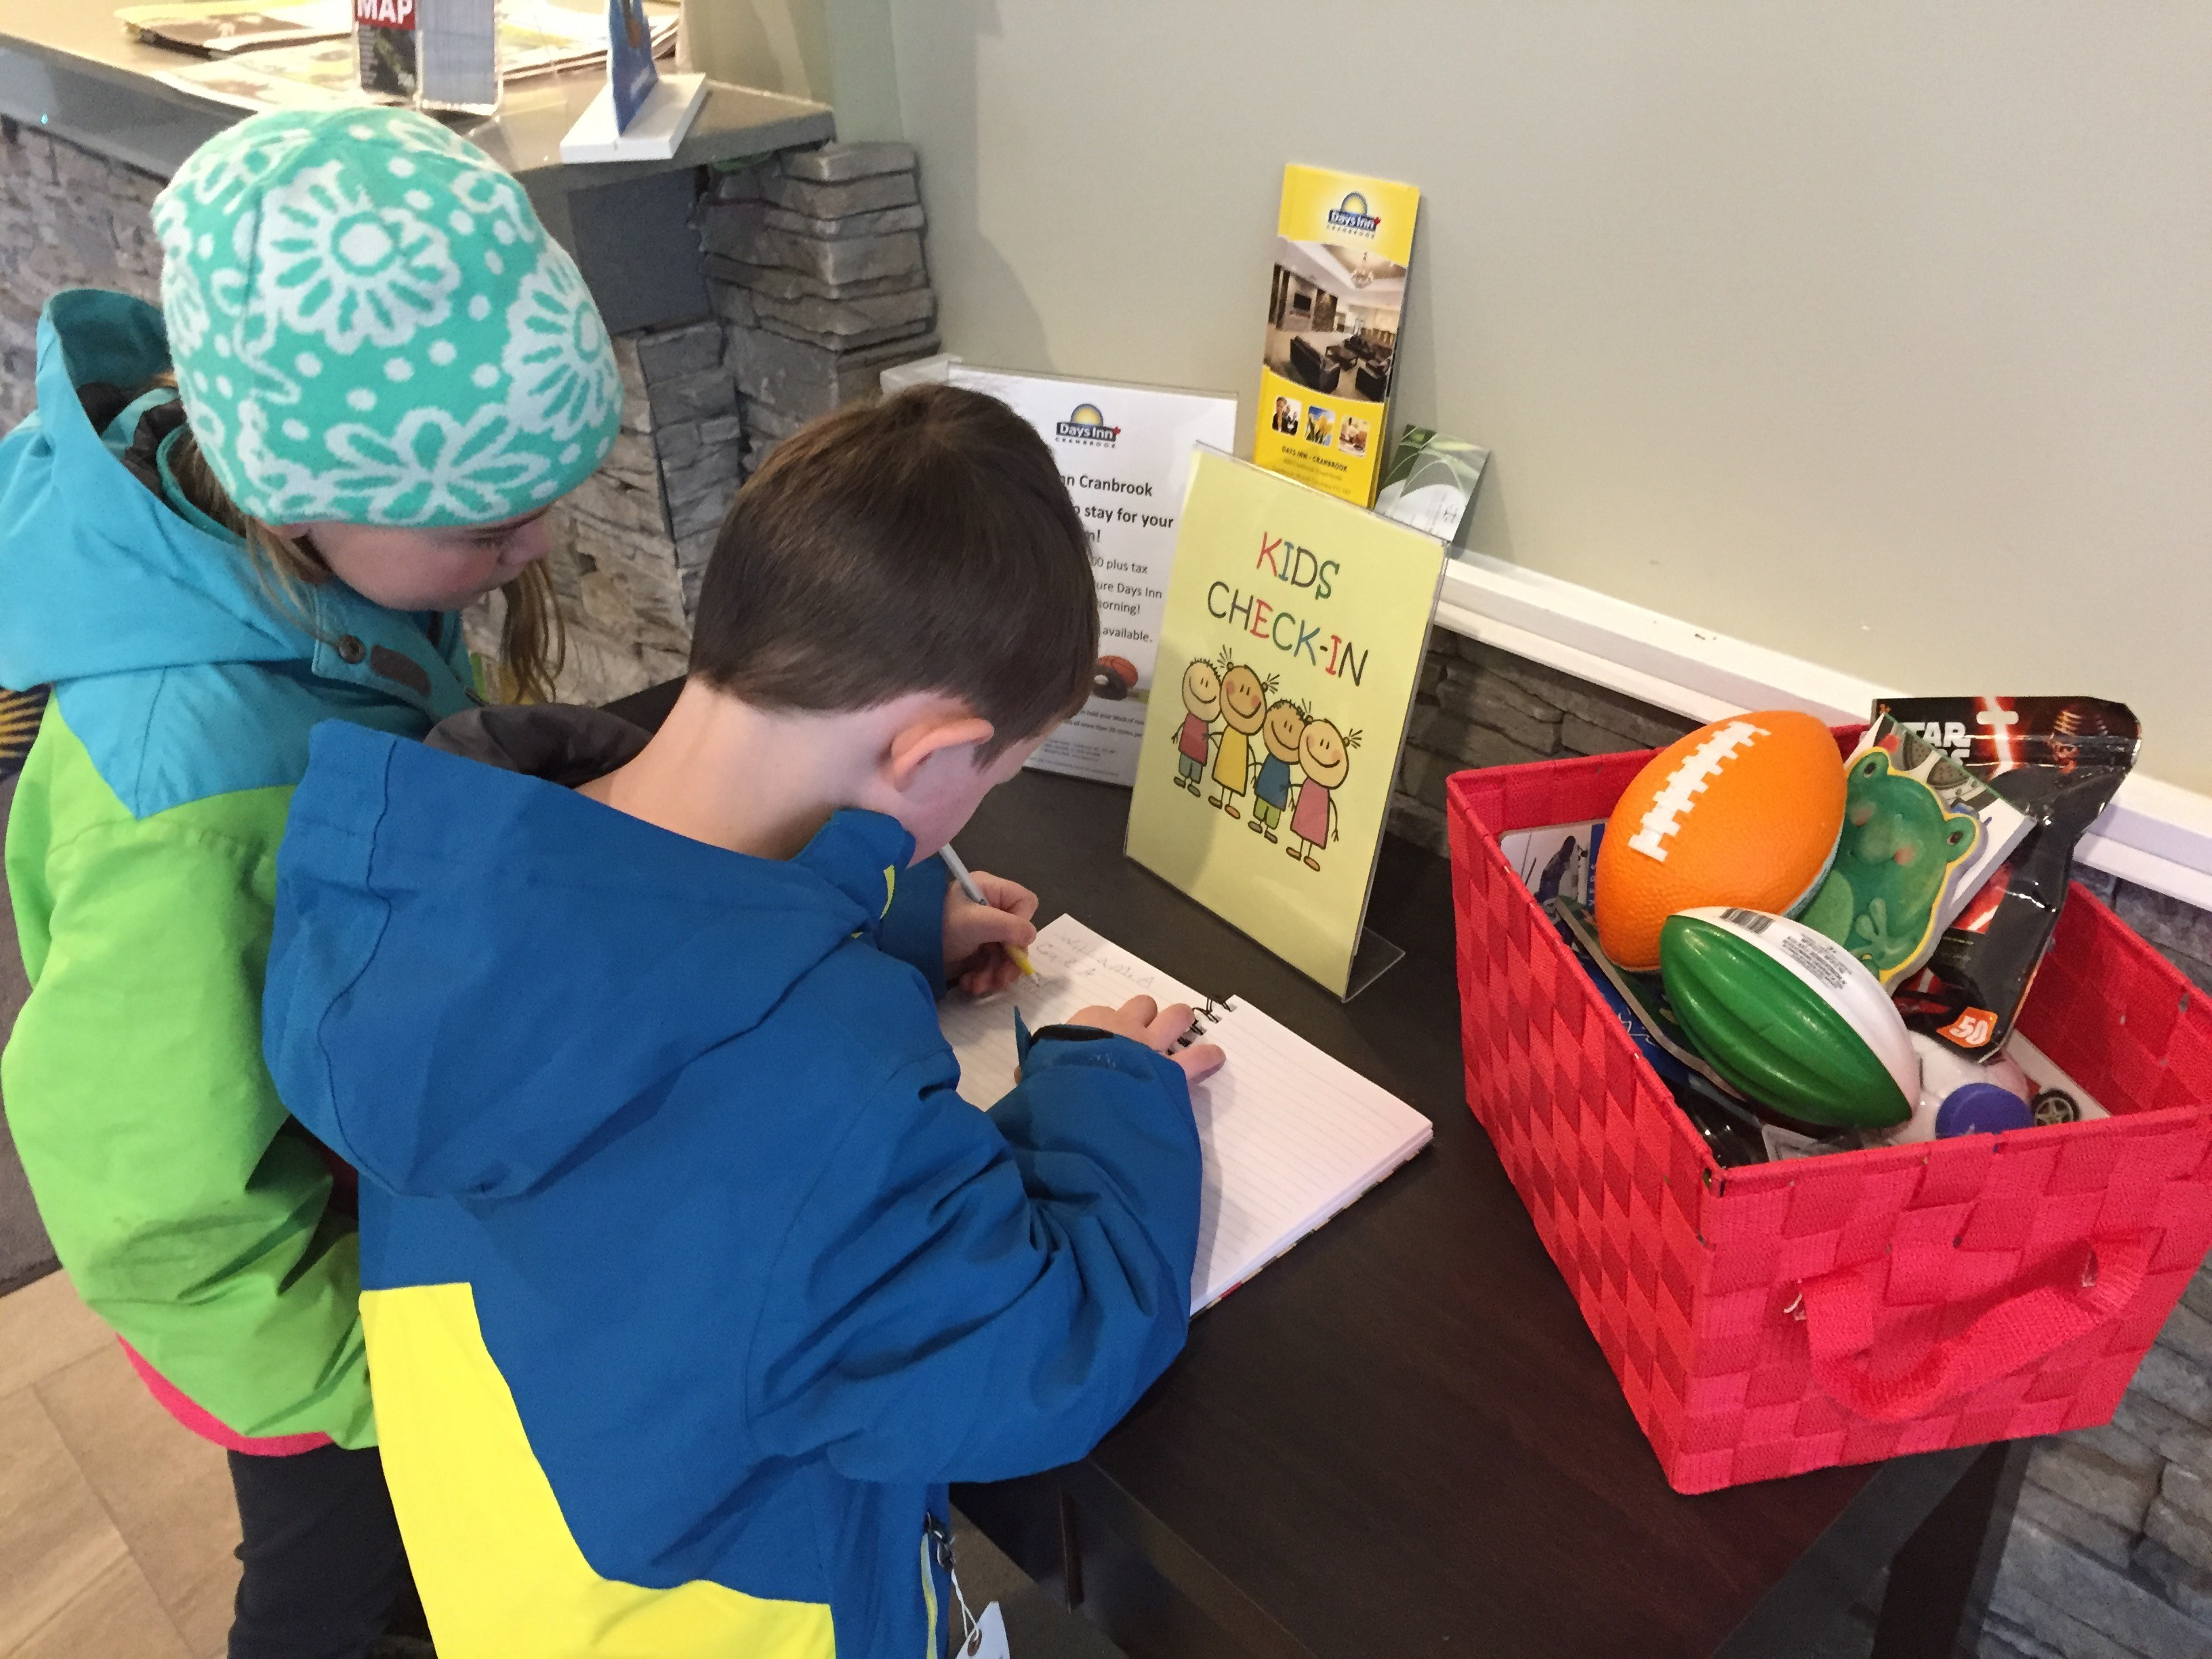 kids-checking-in-at-days-inn-in-cranbrook